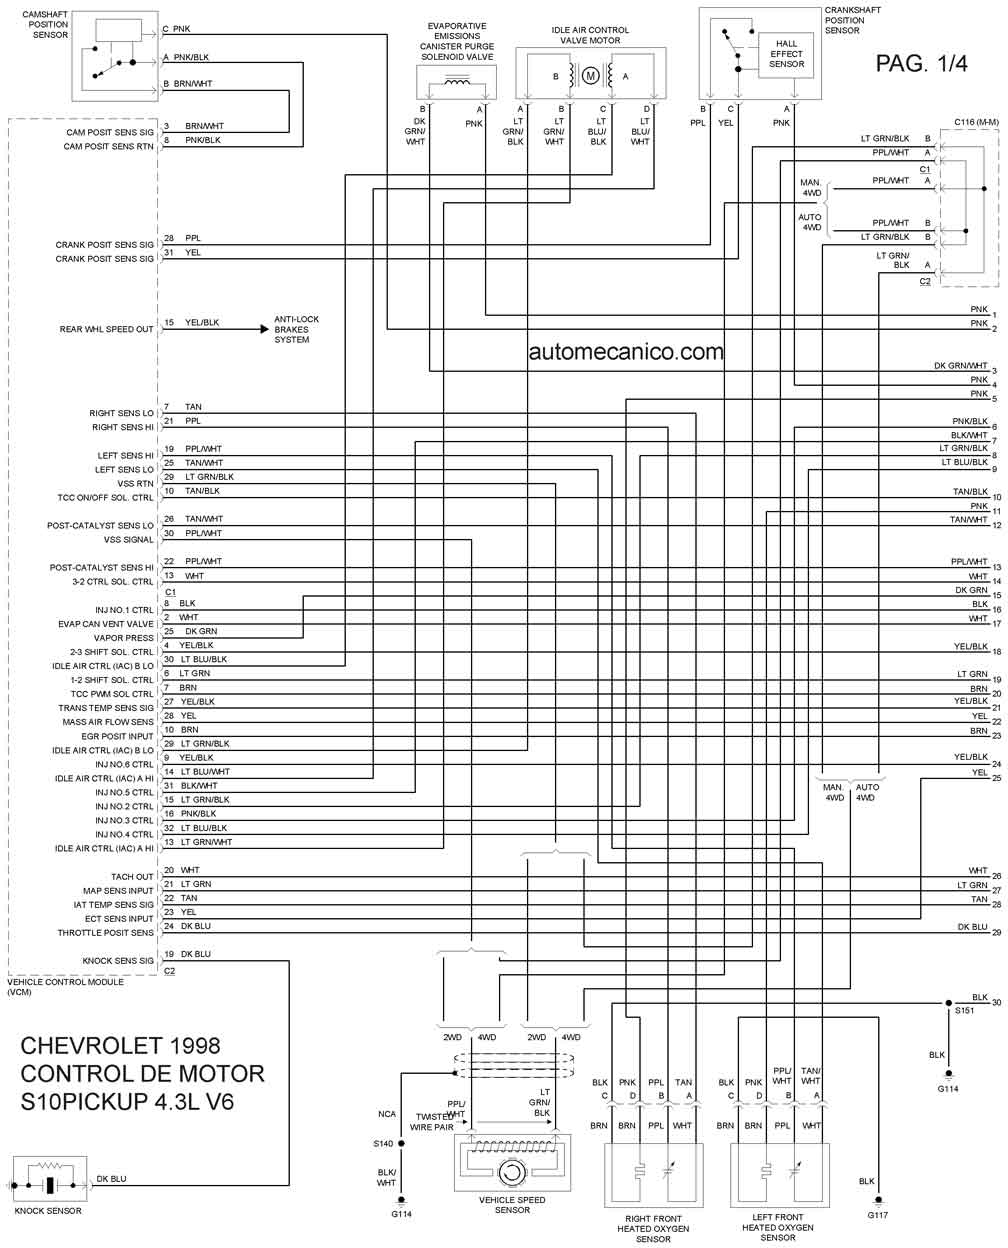 Chevrolet 1998 Diagramas Esquemas Graphics